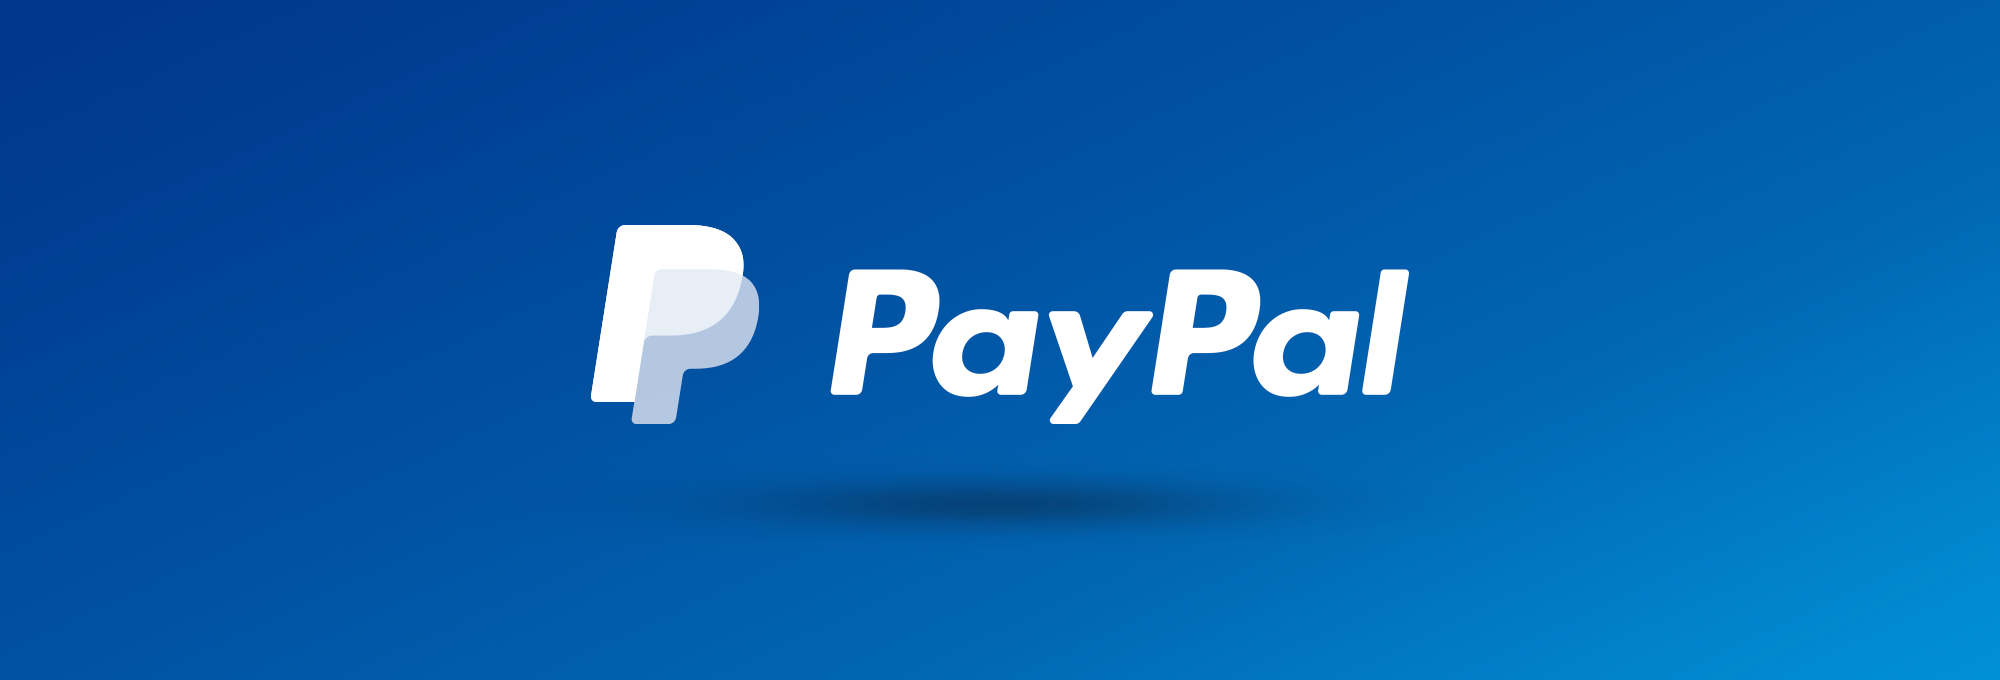 PayPal to Cater Wider Credit Customers with Easy Payments Options